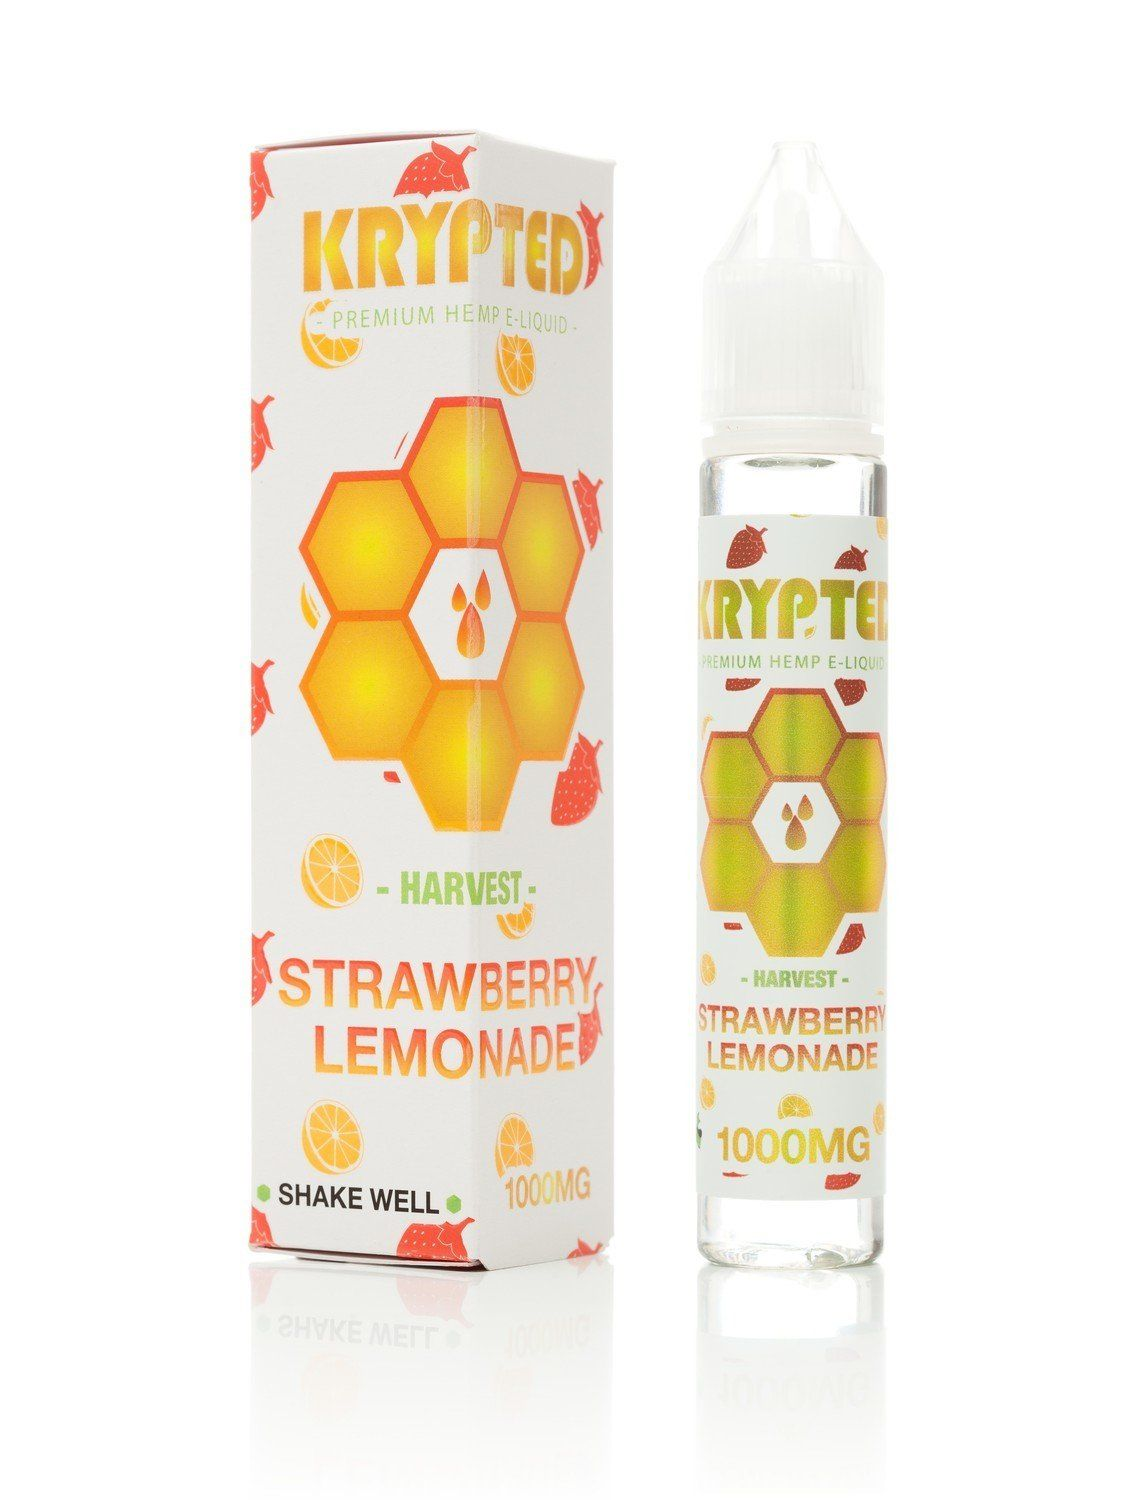 Krypted Strawberry Lemonade CBD Vape Juice